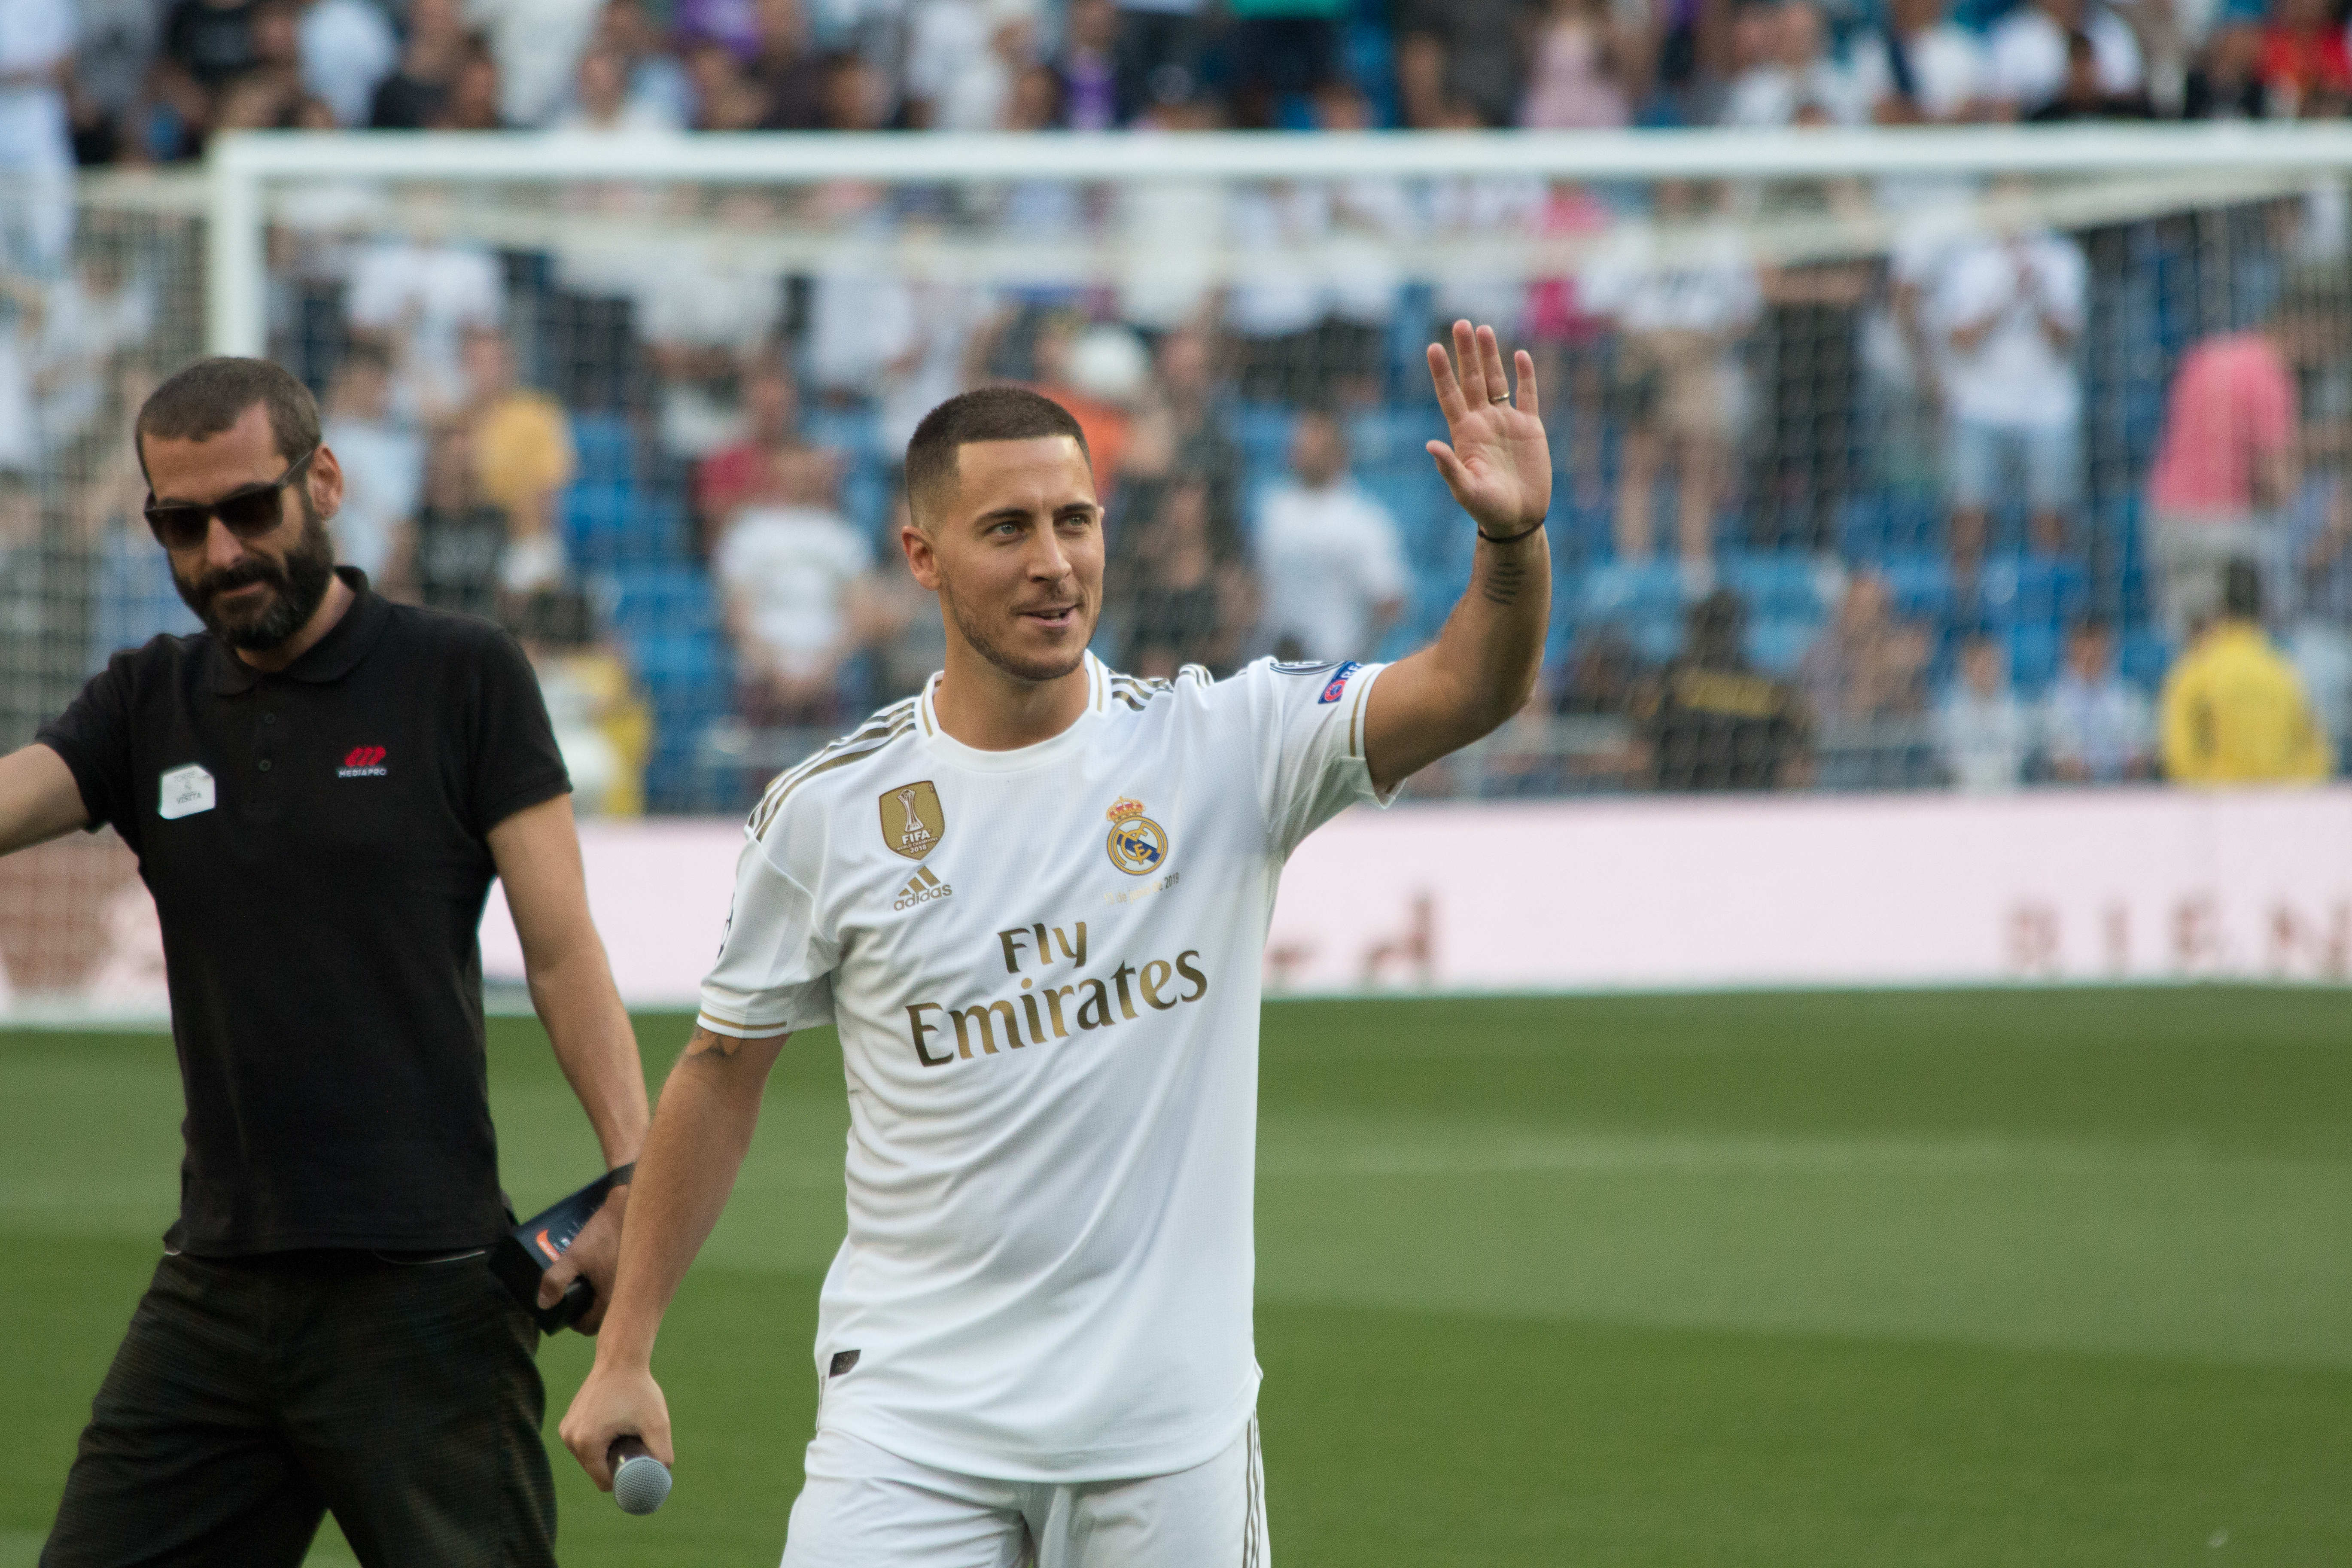 Eden Hazard hopes to emulate basketball greats with the number 23